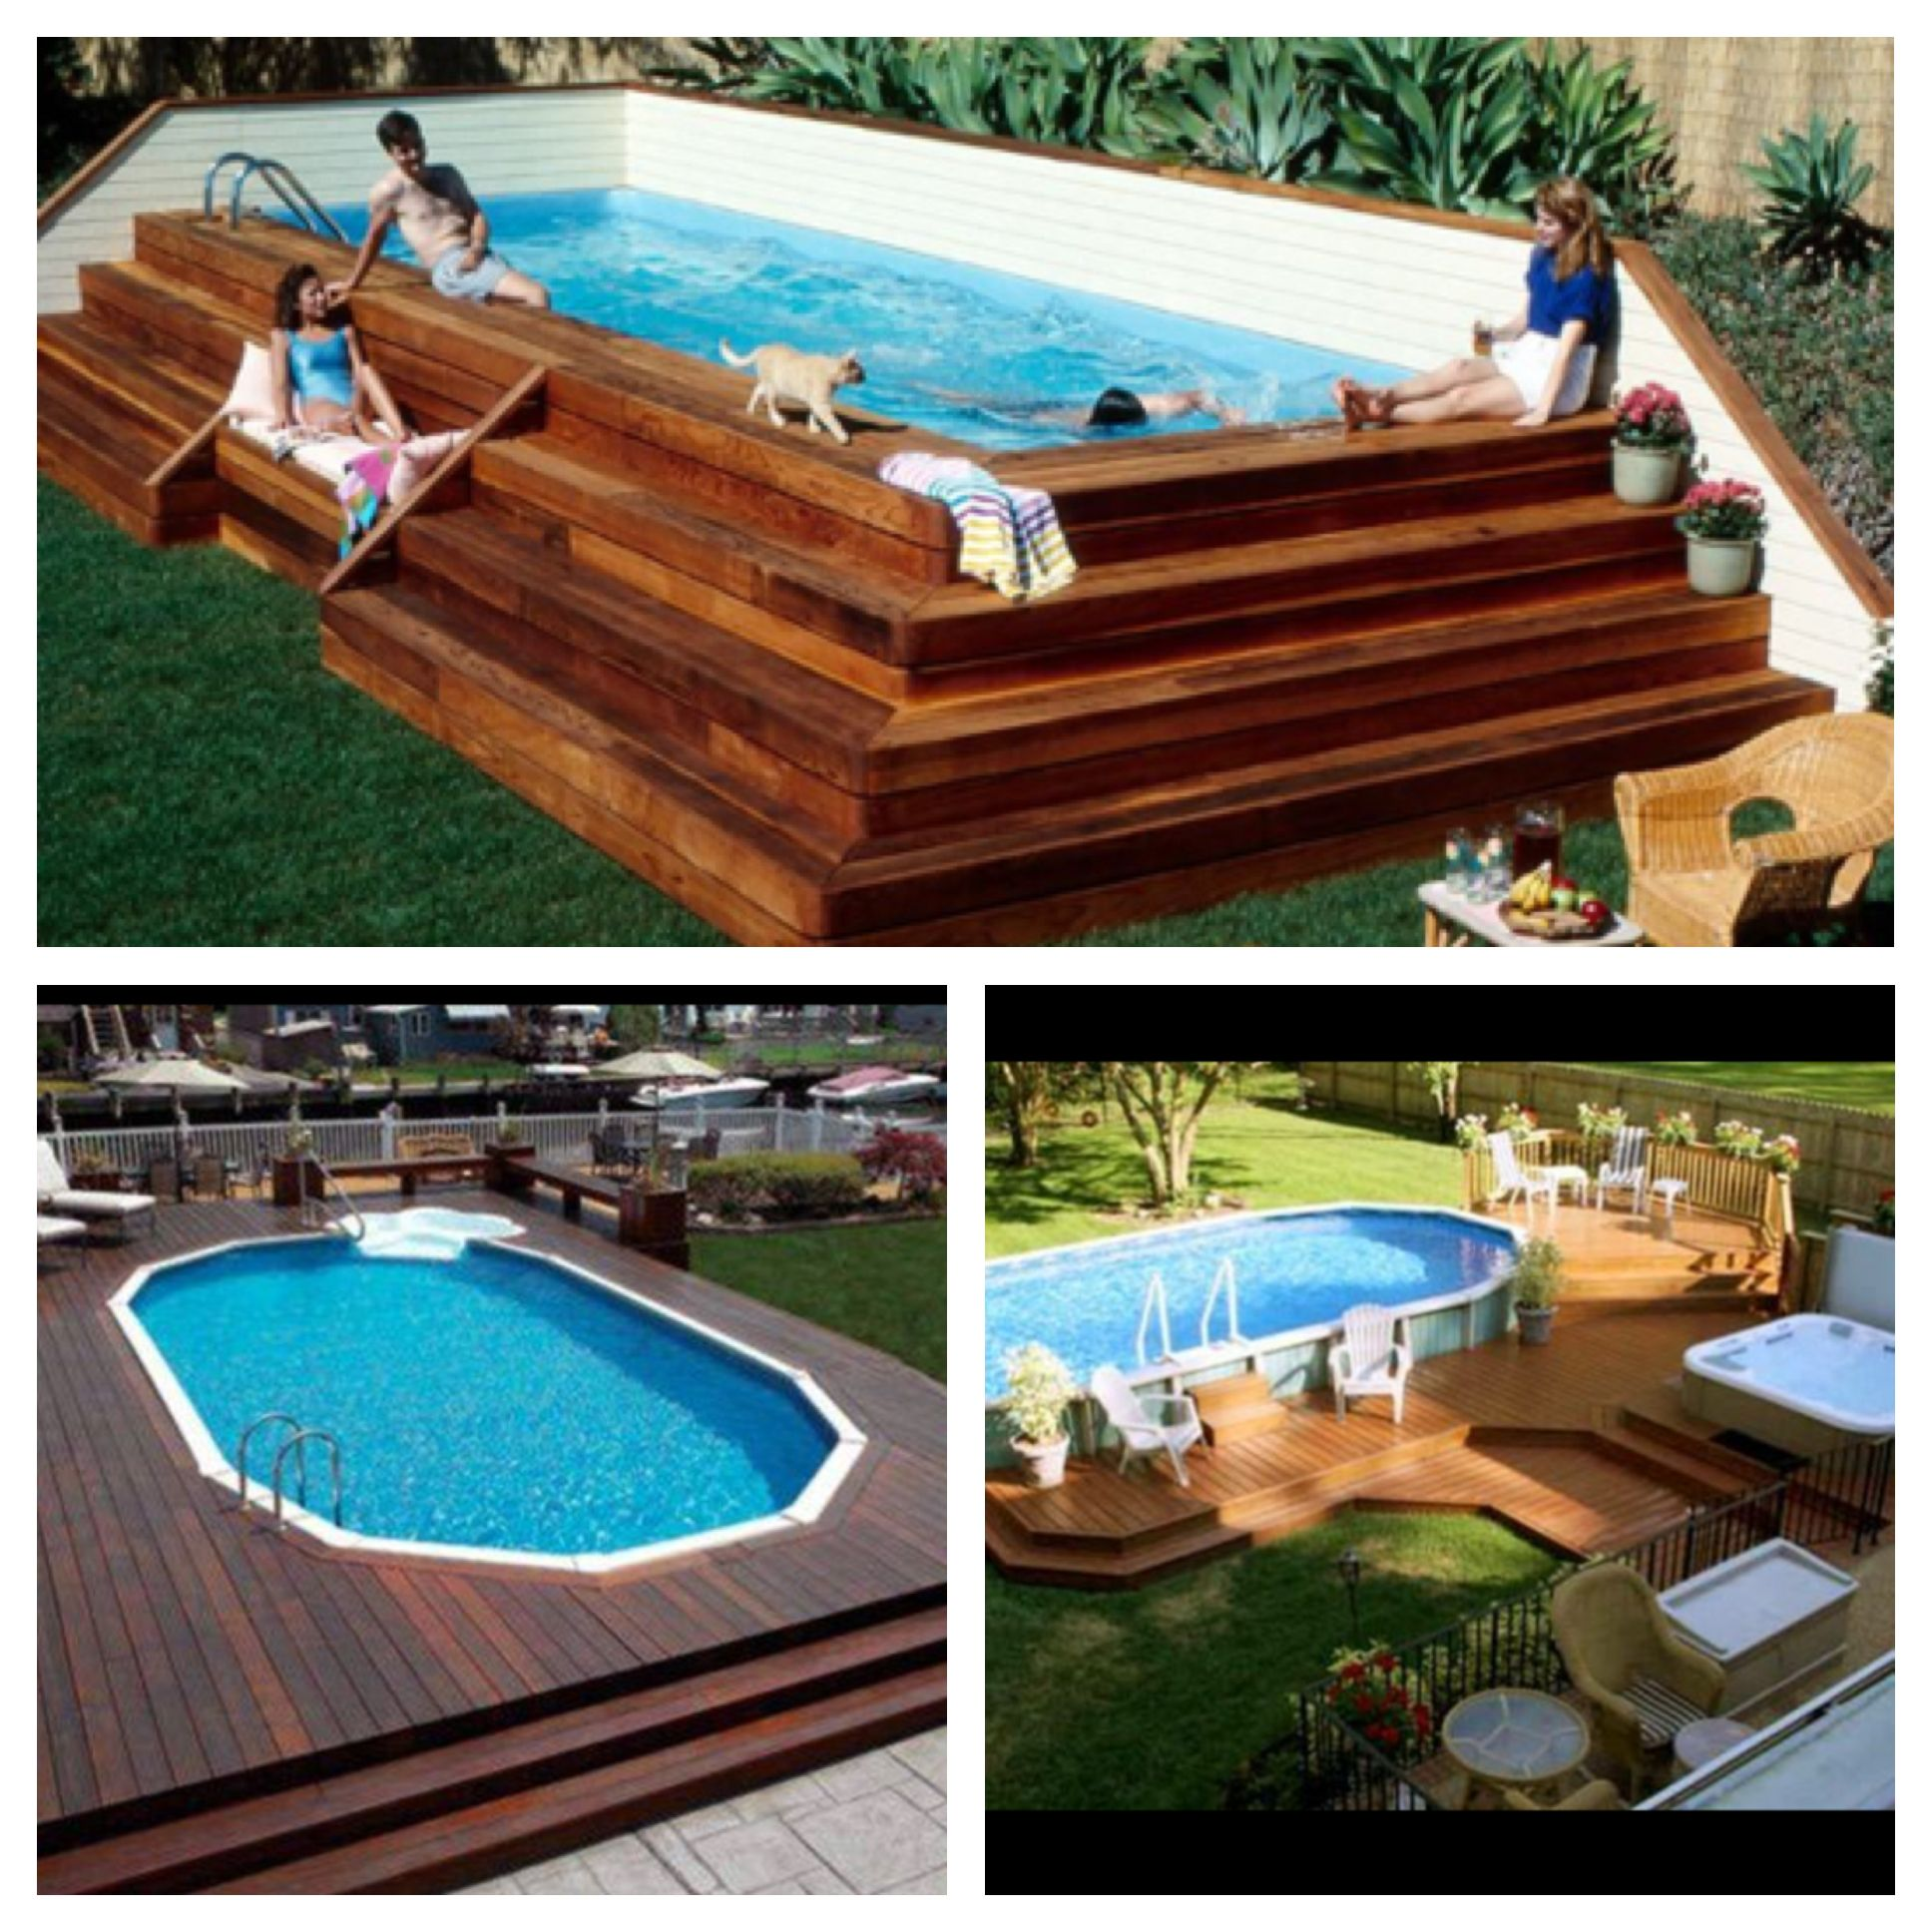 Piscina Intex Inverno Above Ground Pool Decks Future Home Projeto Piscina